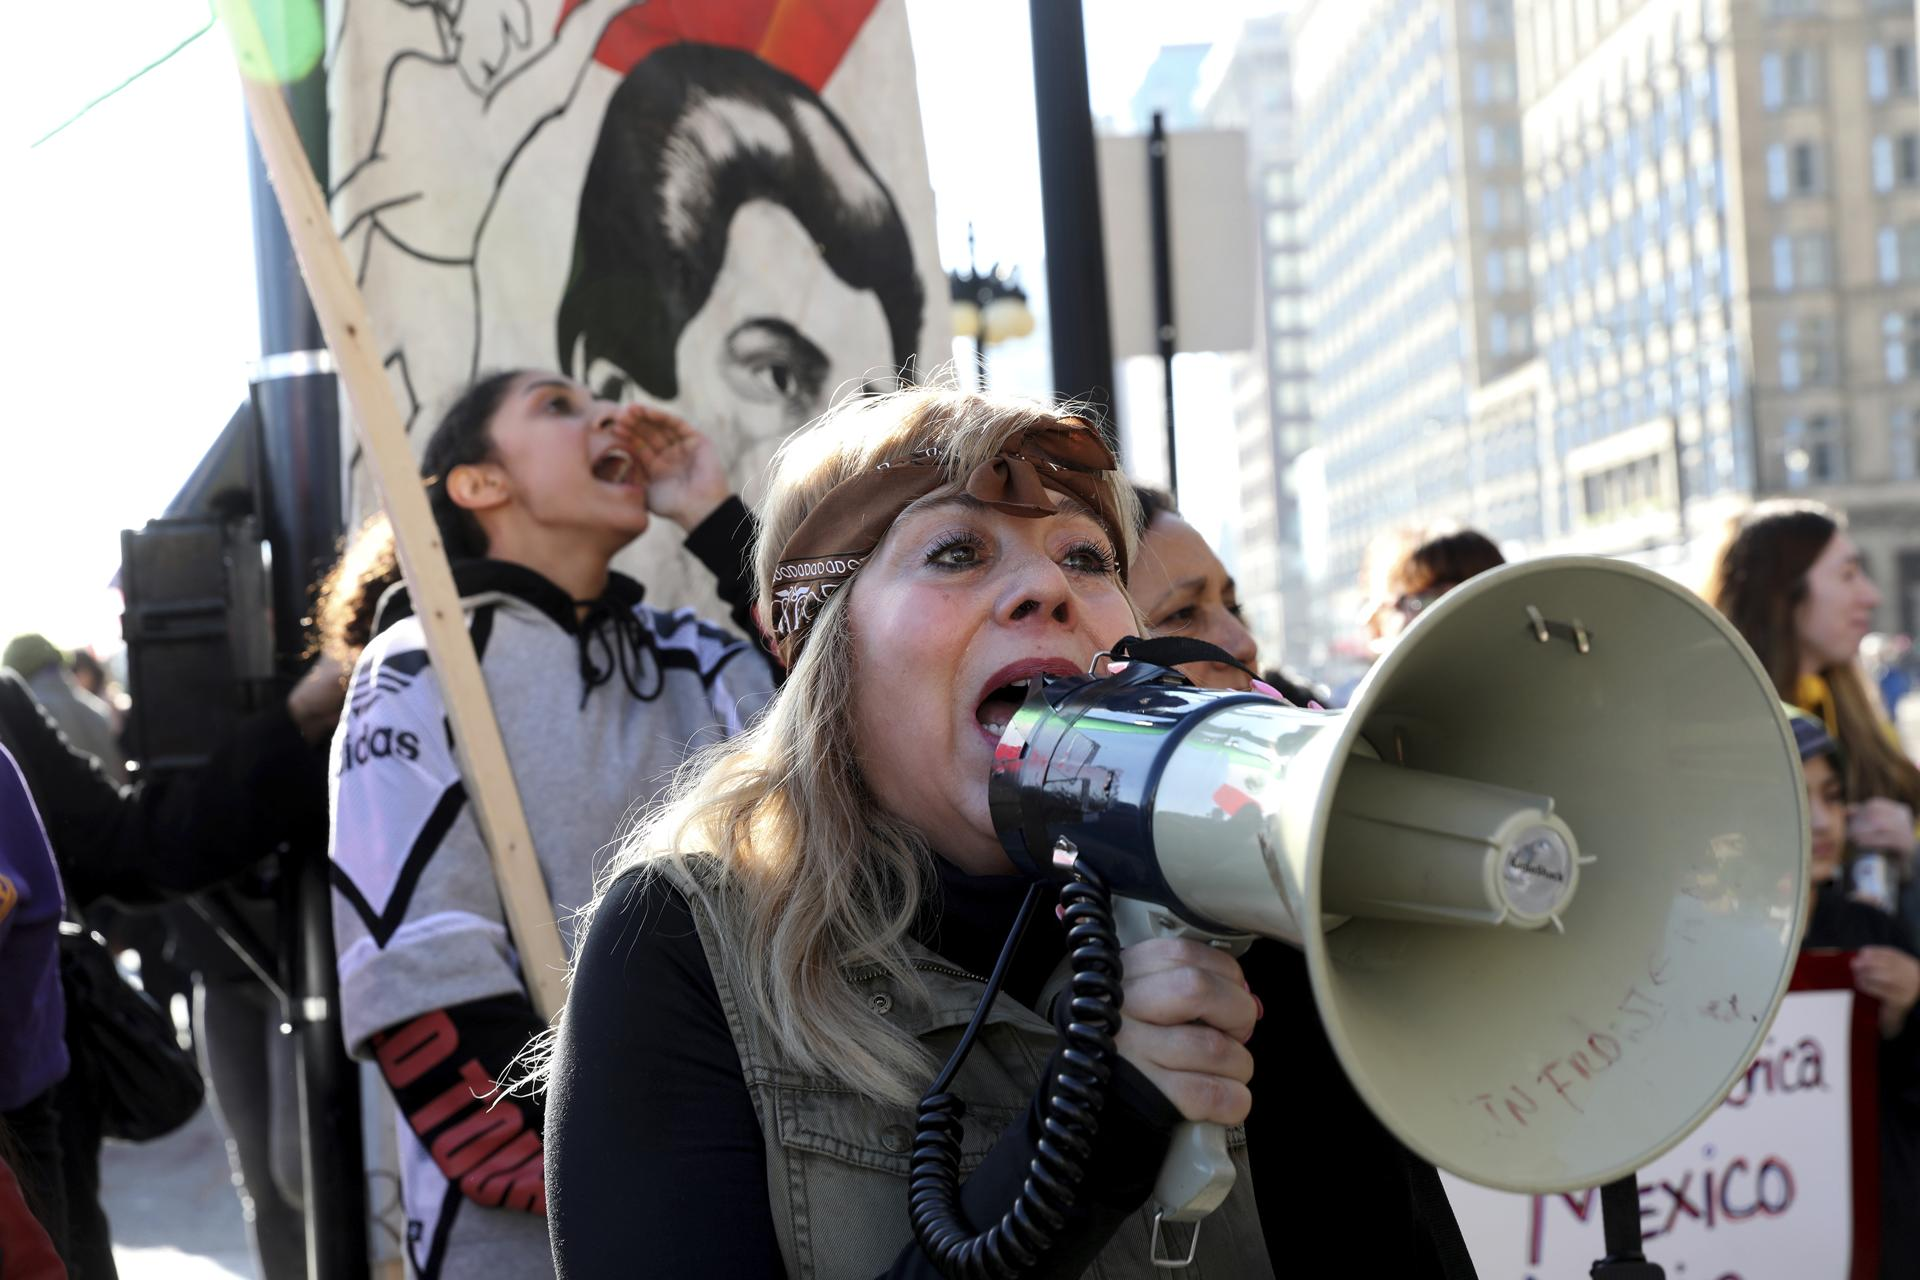 Activist Emma Lozano stirred up the crowd around her during the Women's March in Chicago, which drew 250,000 on Saturday, according to The Chicago Tribune.